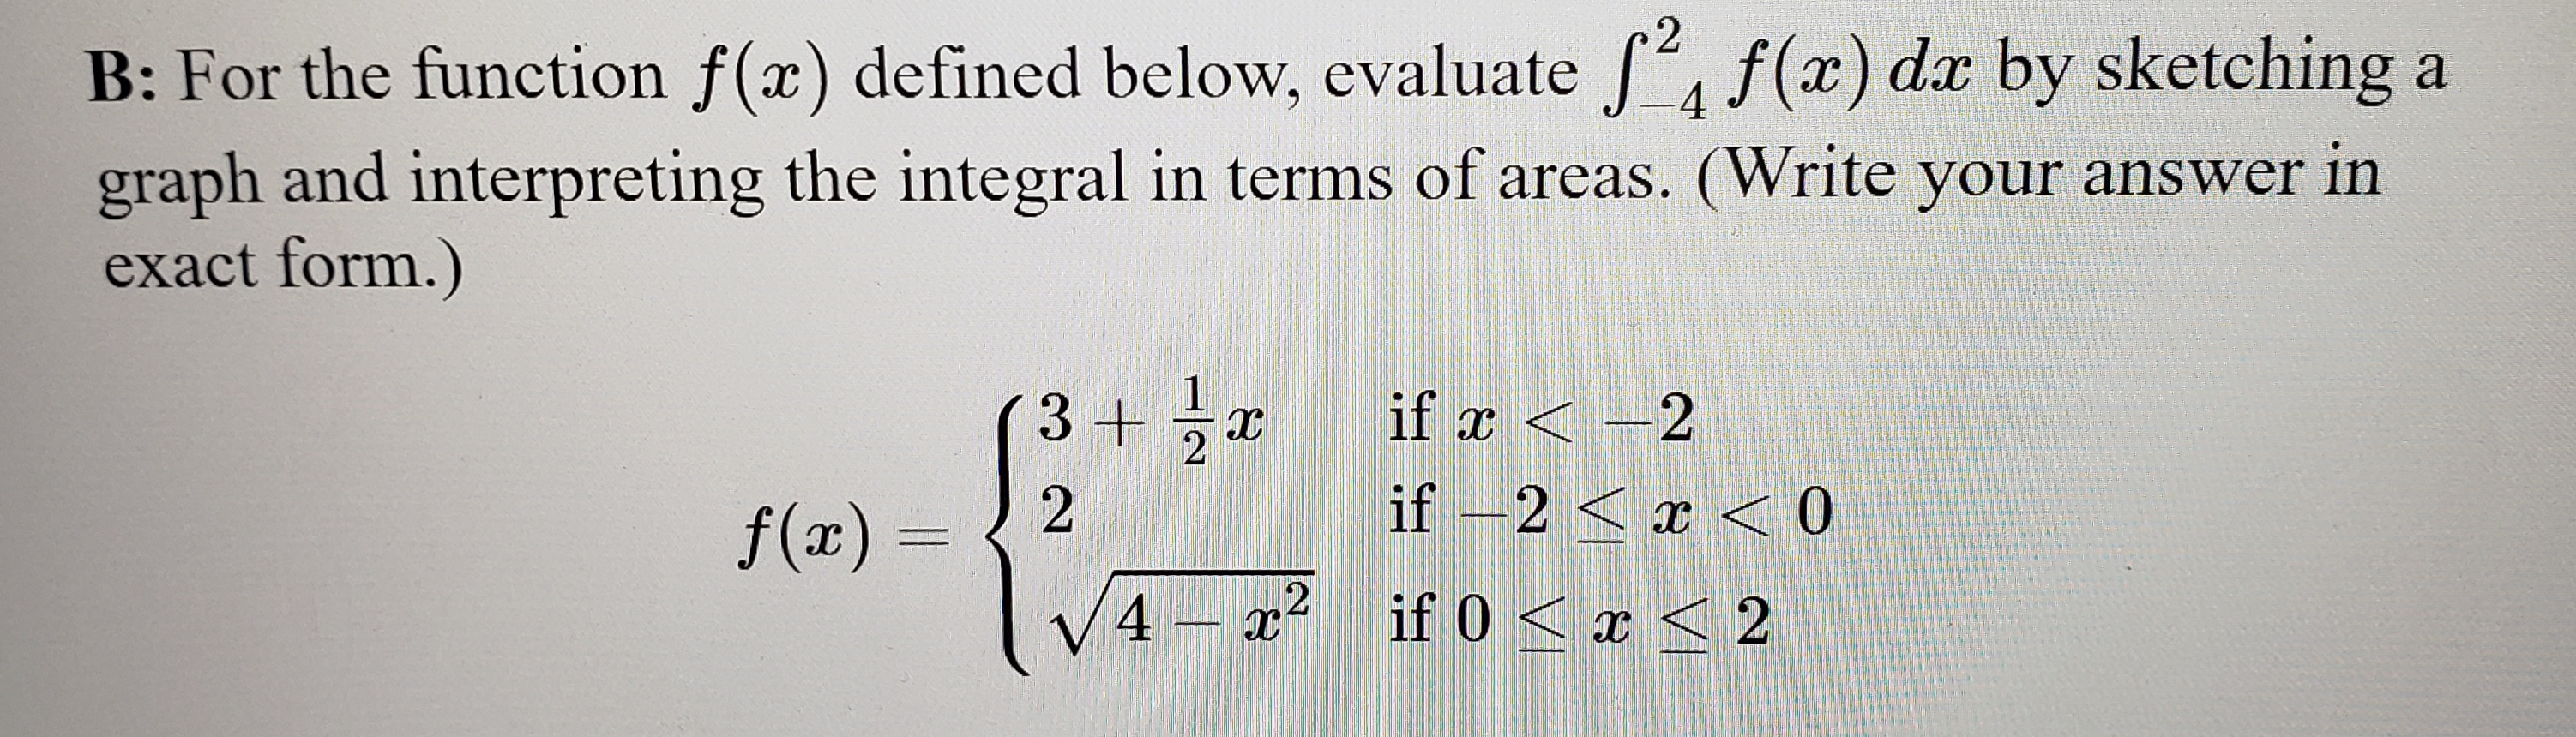 2 f(x) dr by sketching a B: For the function f(x) defined below, evaluate 4 graph and interpreting the integral in terms of areas. (Write your answer in exact form.) 3 +2 if x 2 if -2< x< 0 2 f(x) = 2 if 0 < 2 4